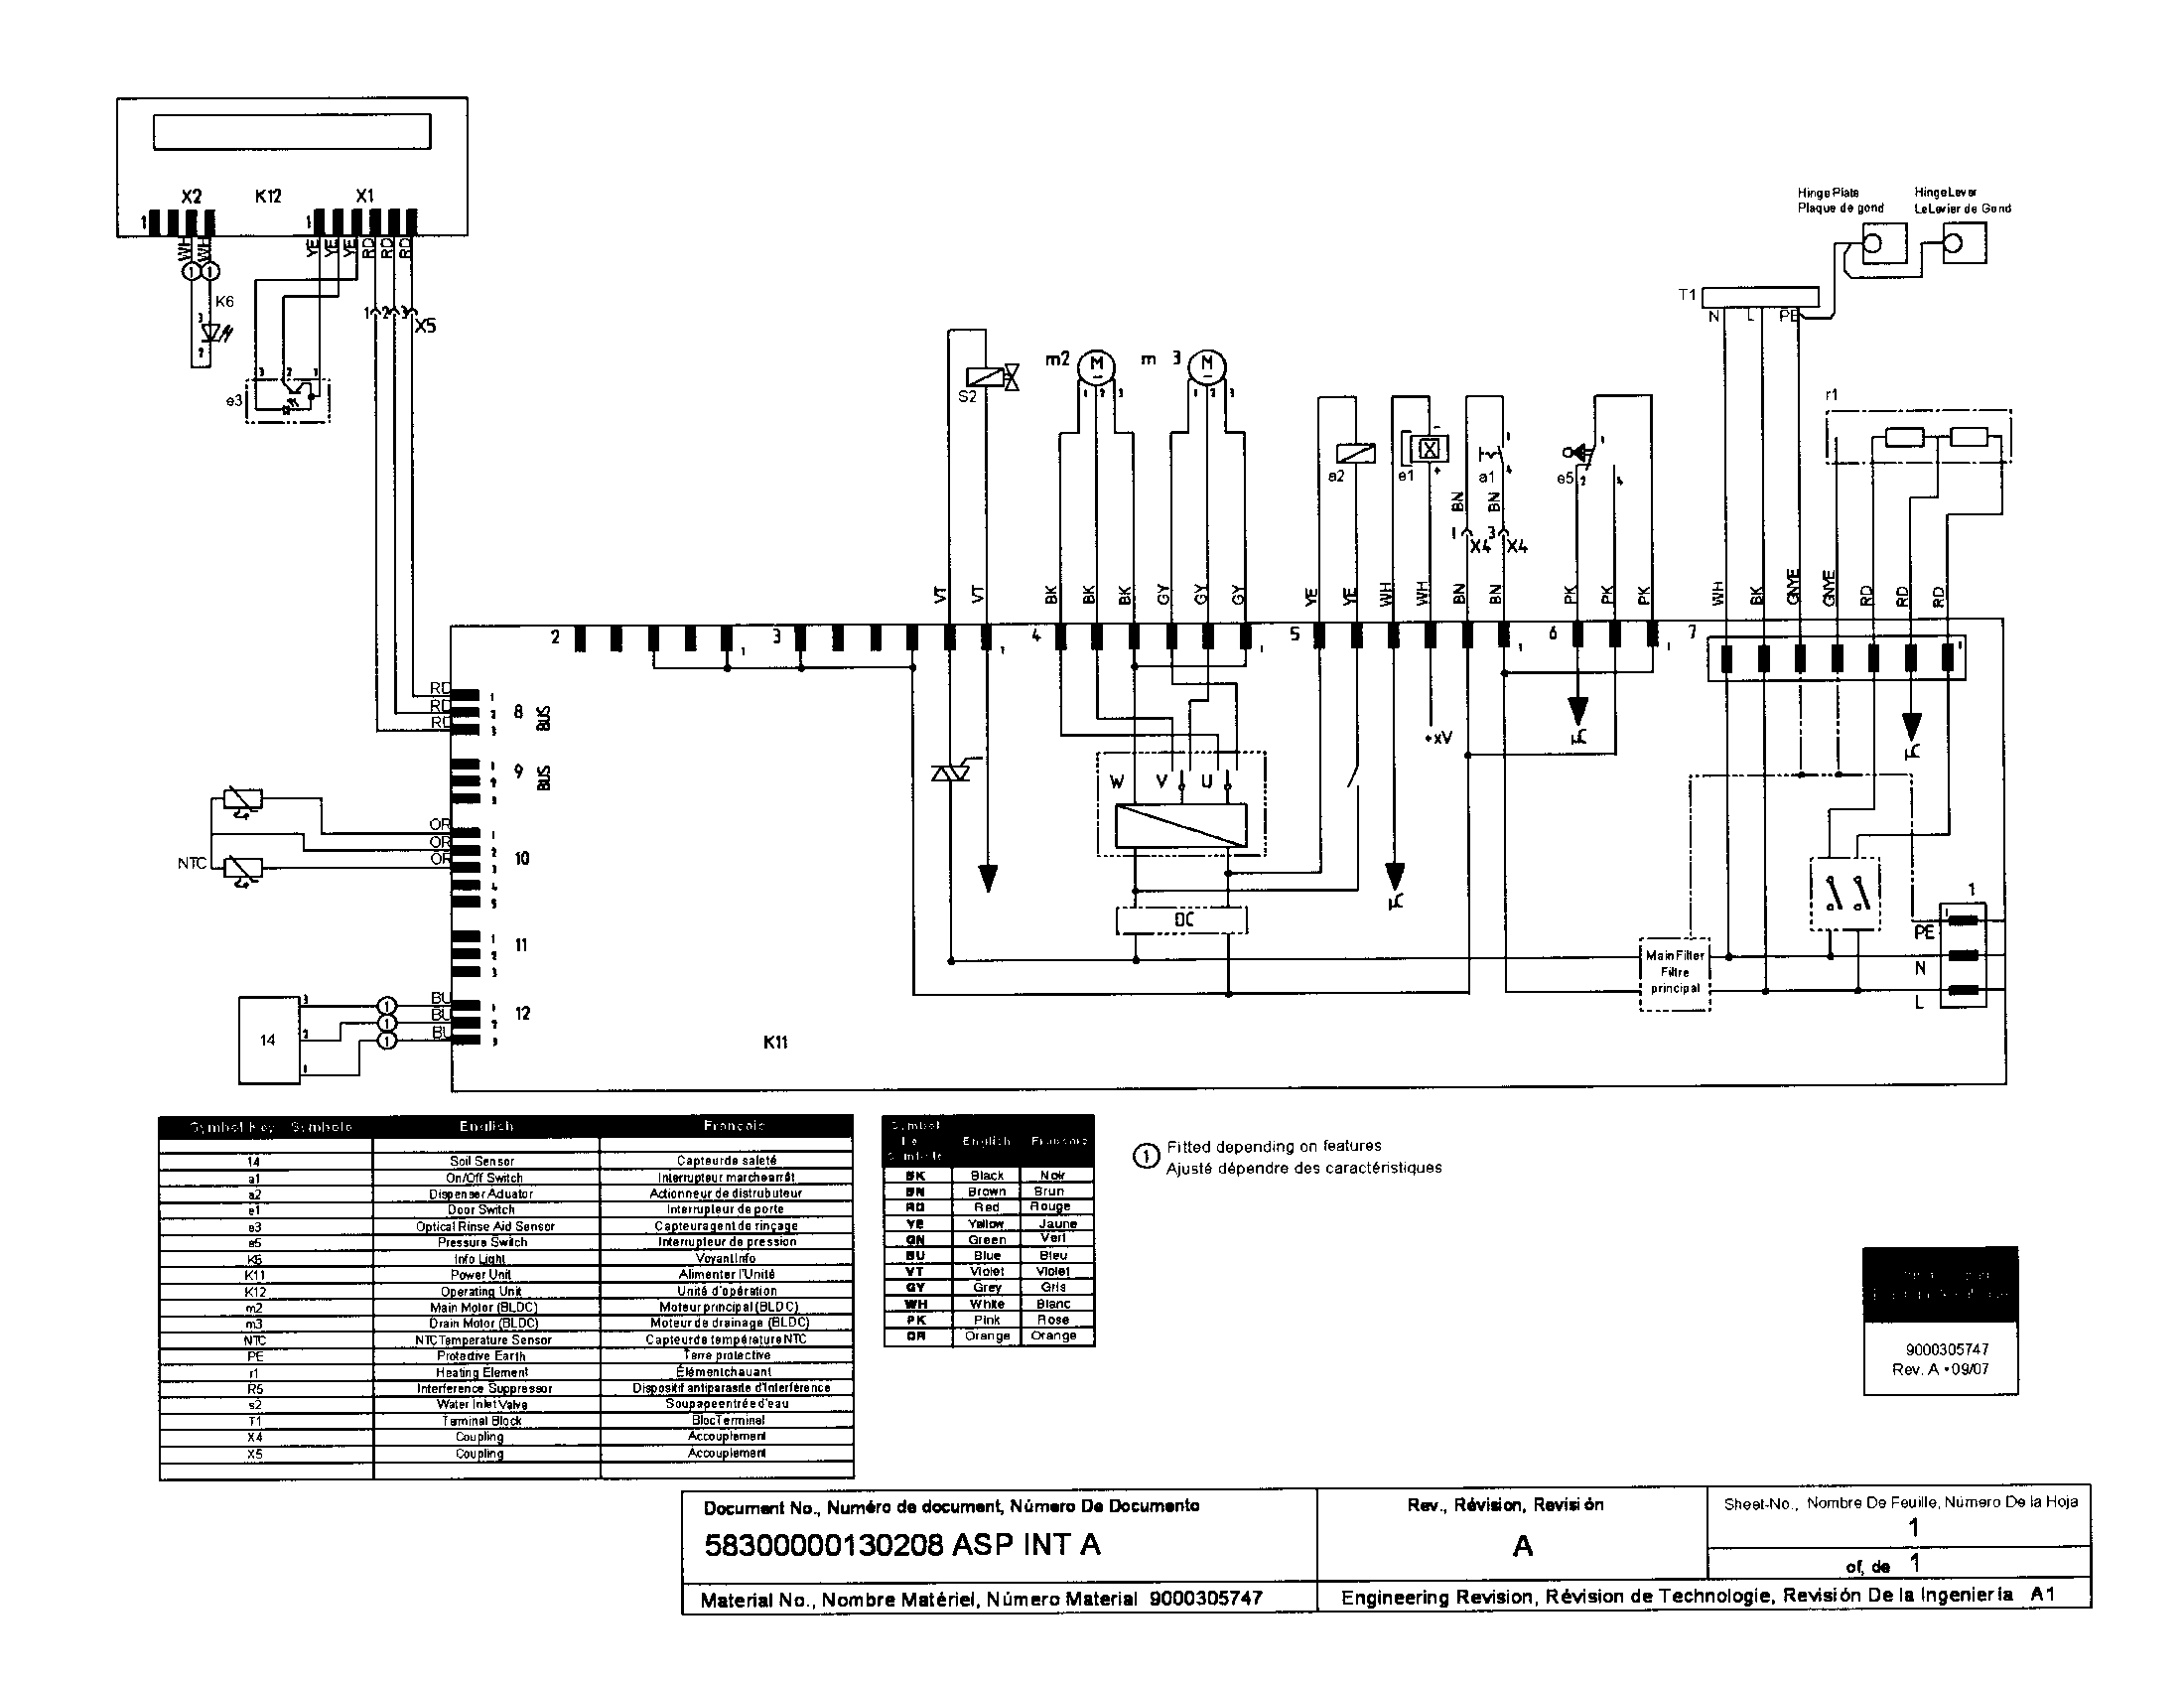 Diagram Diagramtemplate Diagramsample Diagram Circuit Diagram Wire